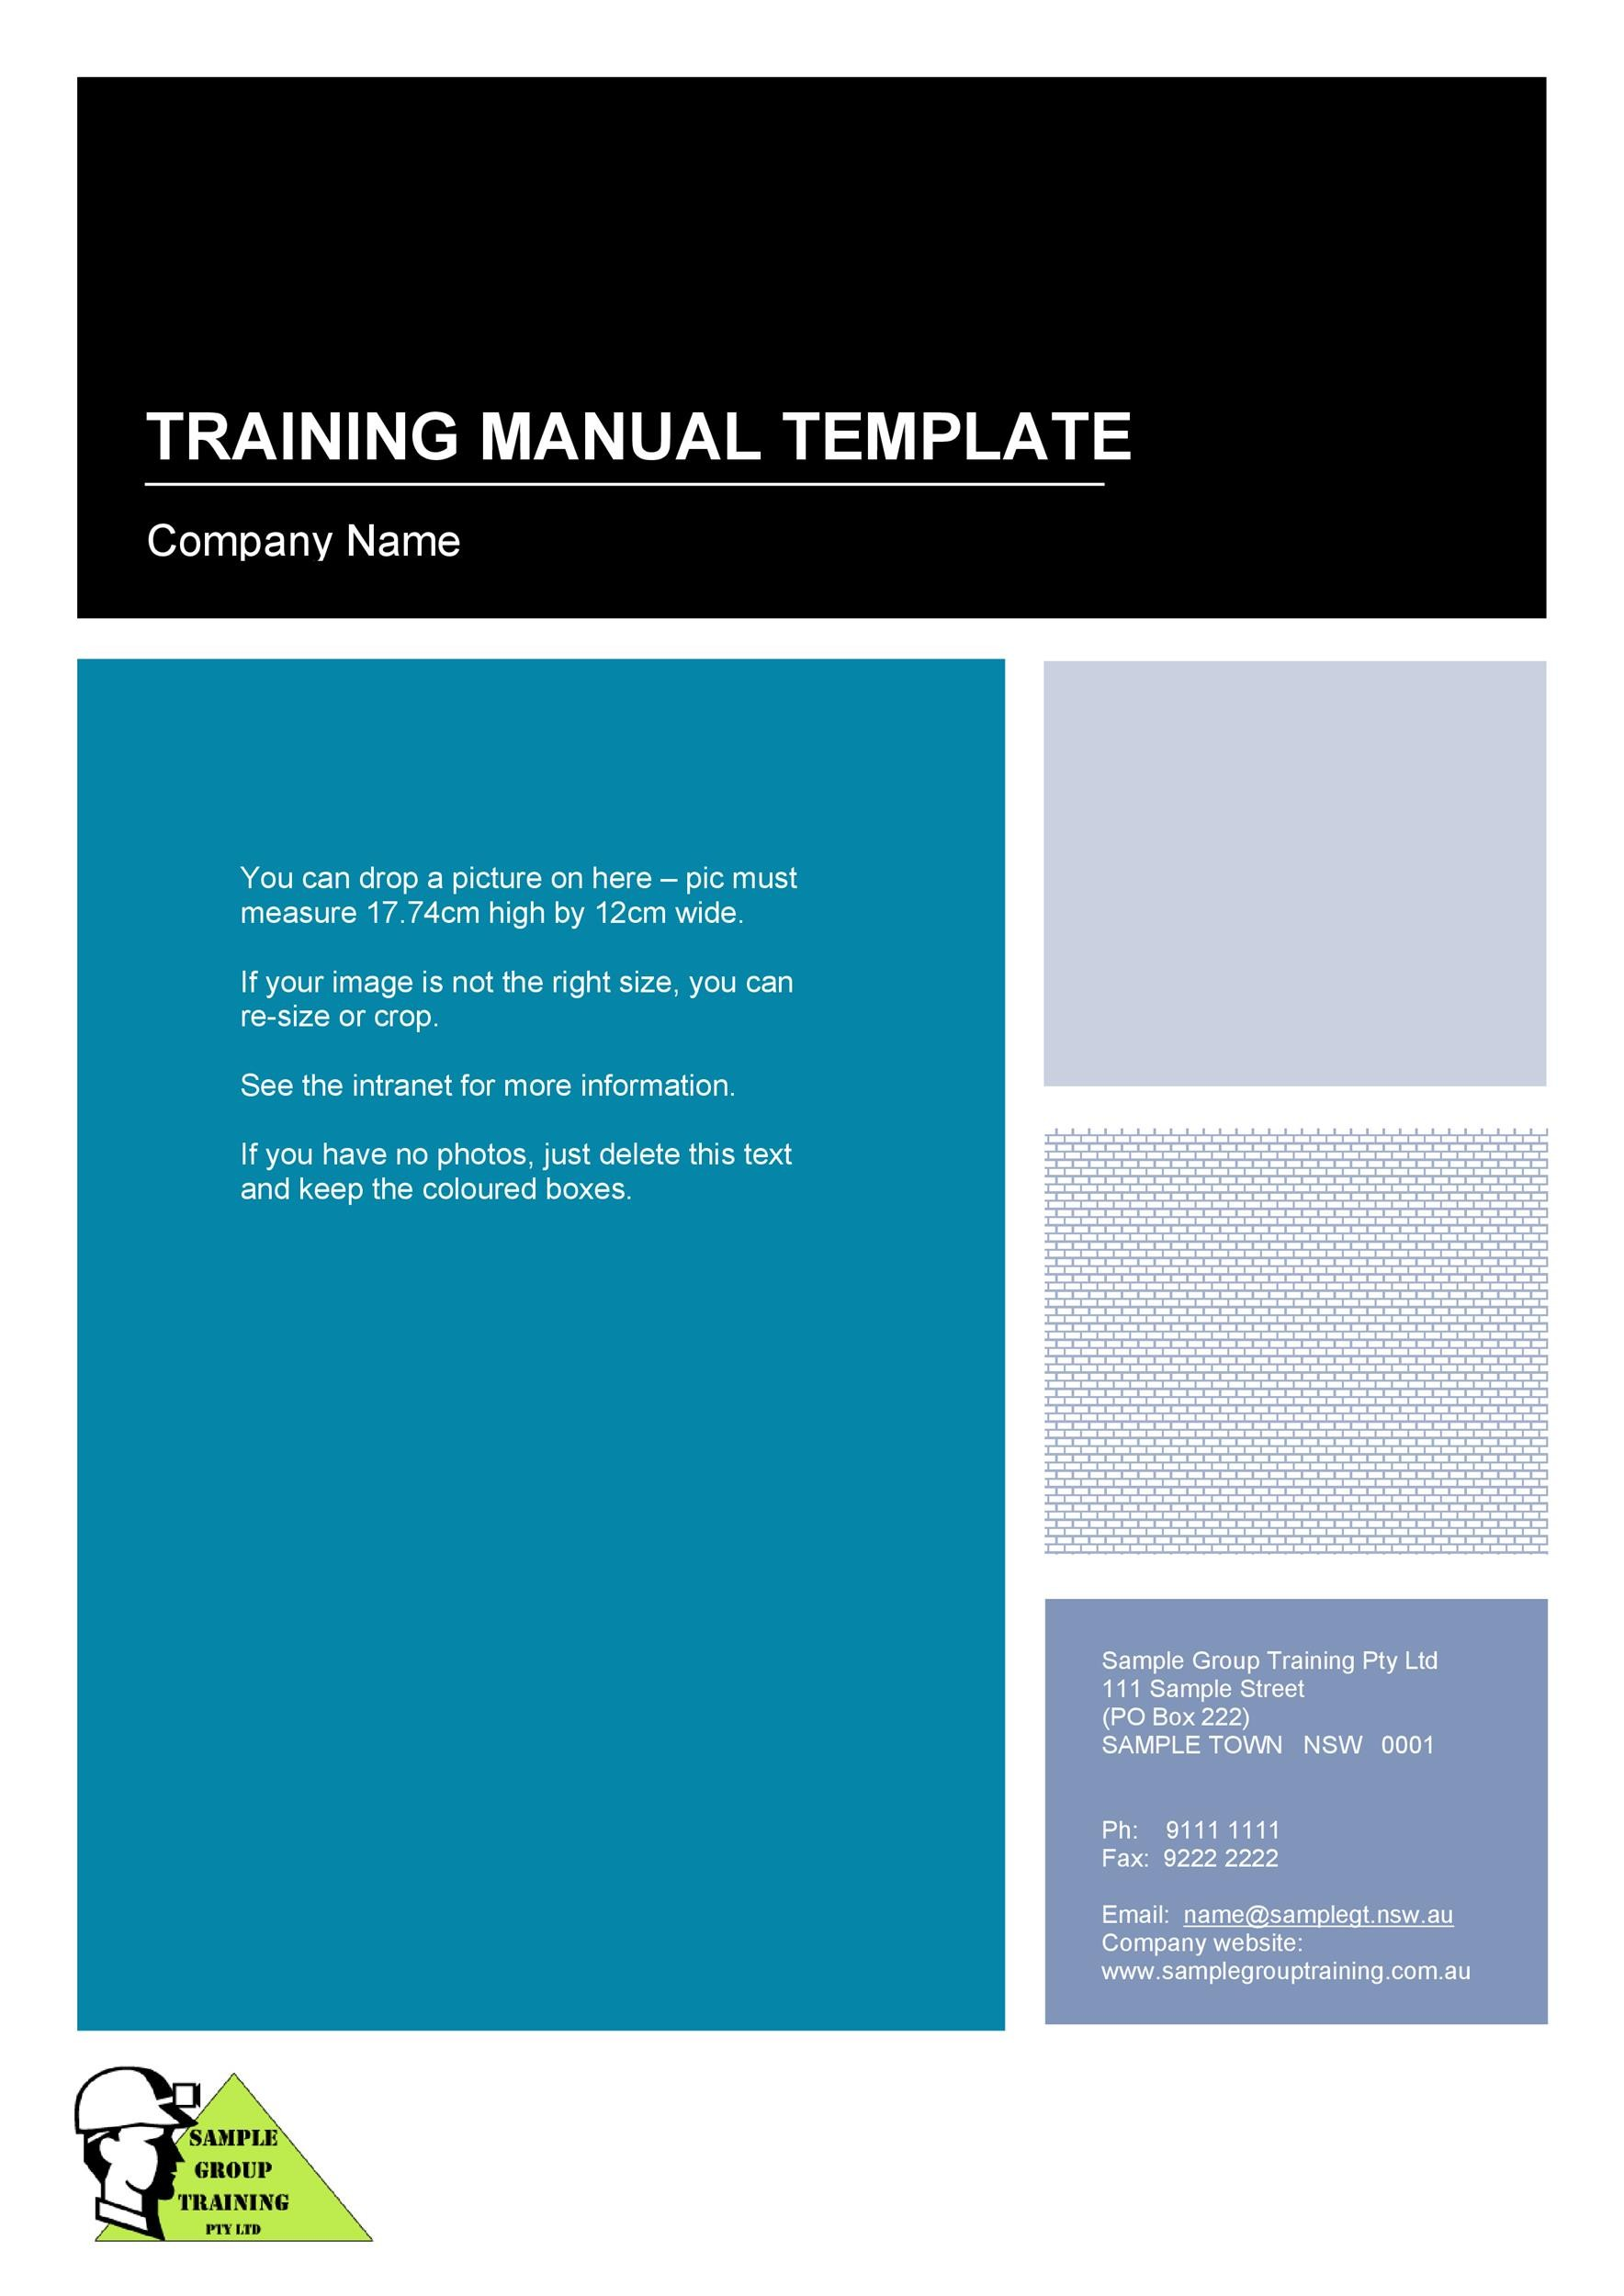 Printable Training Manual Template 01